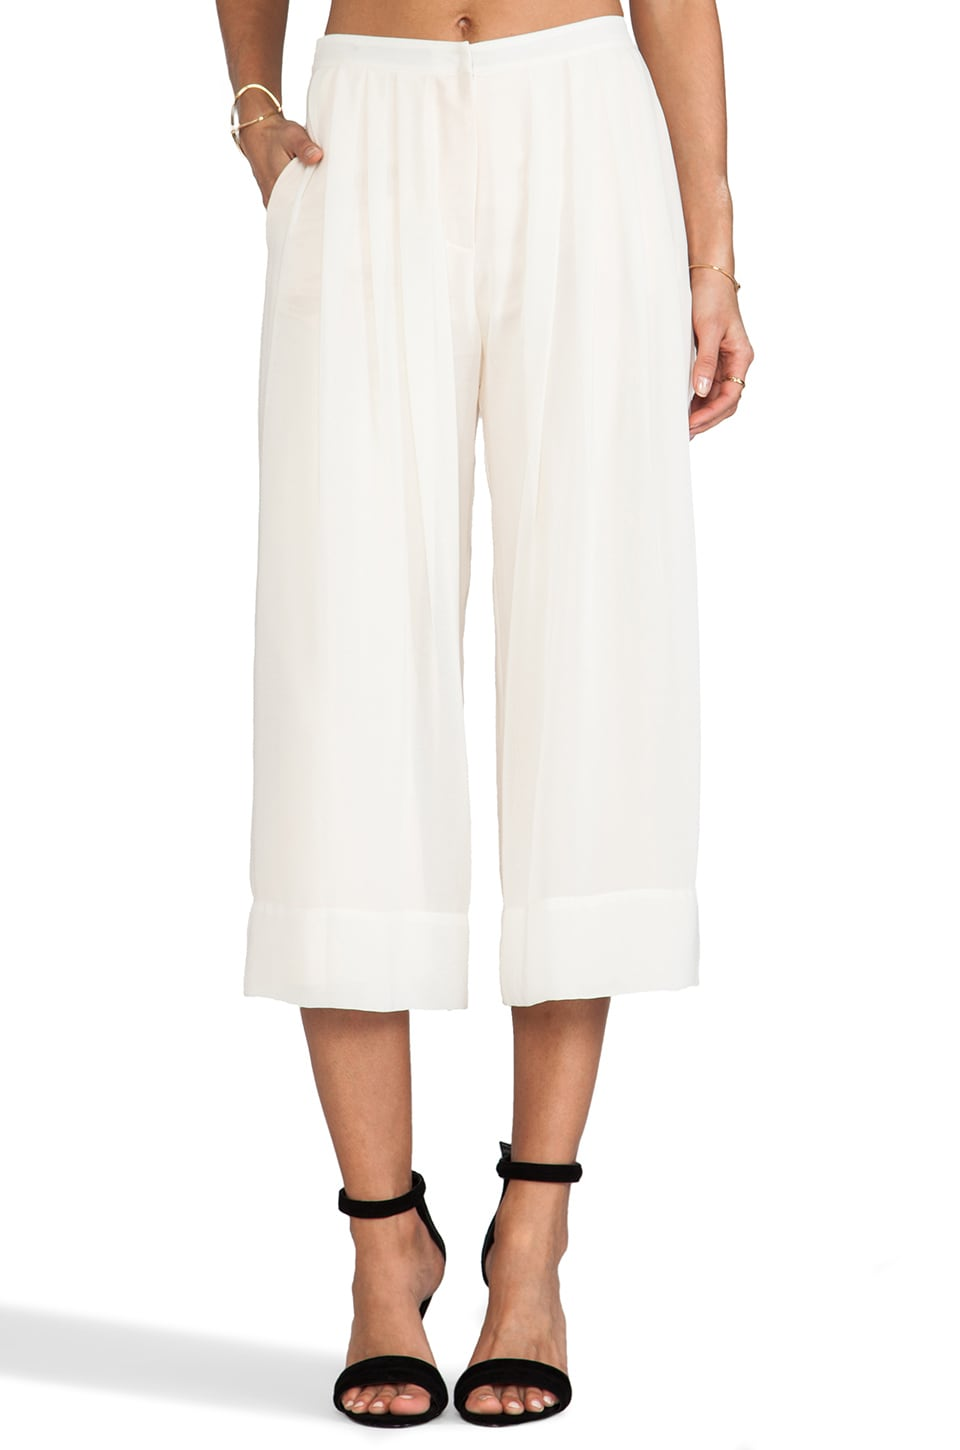 Lovers + Friends x Monica Rose Cannes Gaucho Pants in Bone